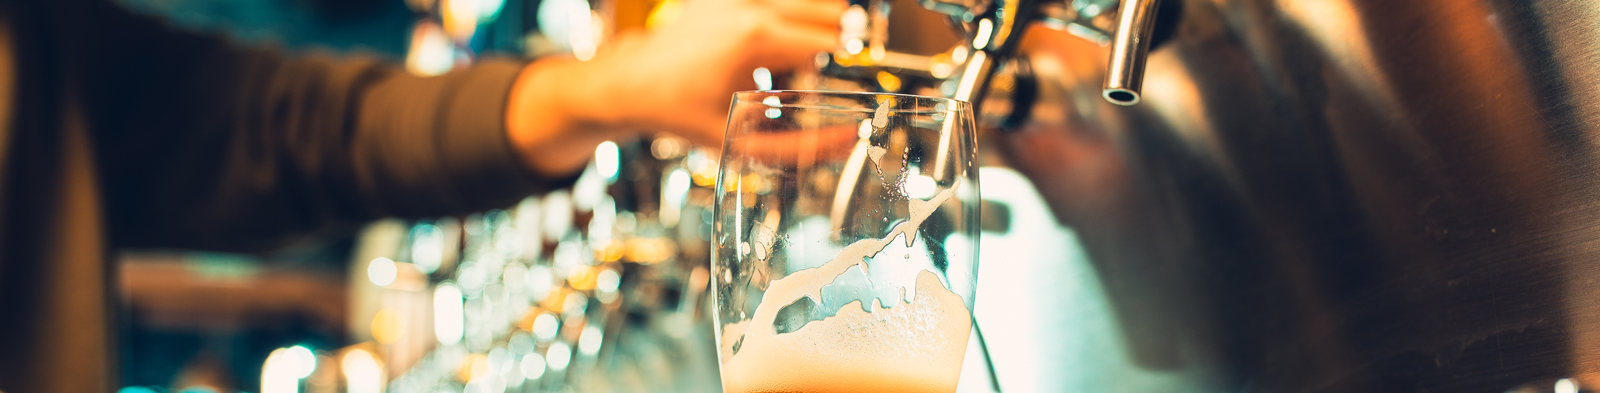 A young bartender pours beer from a tap into a glass in a busy bar.